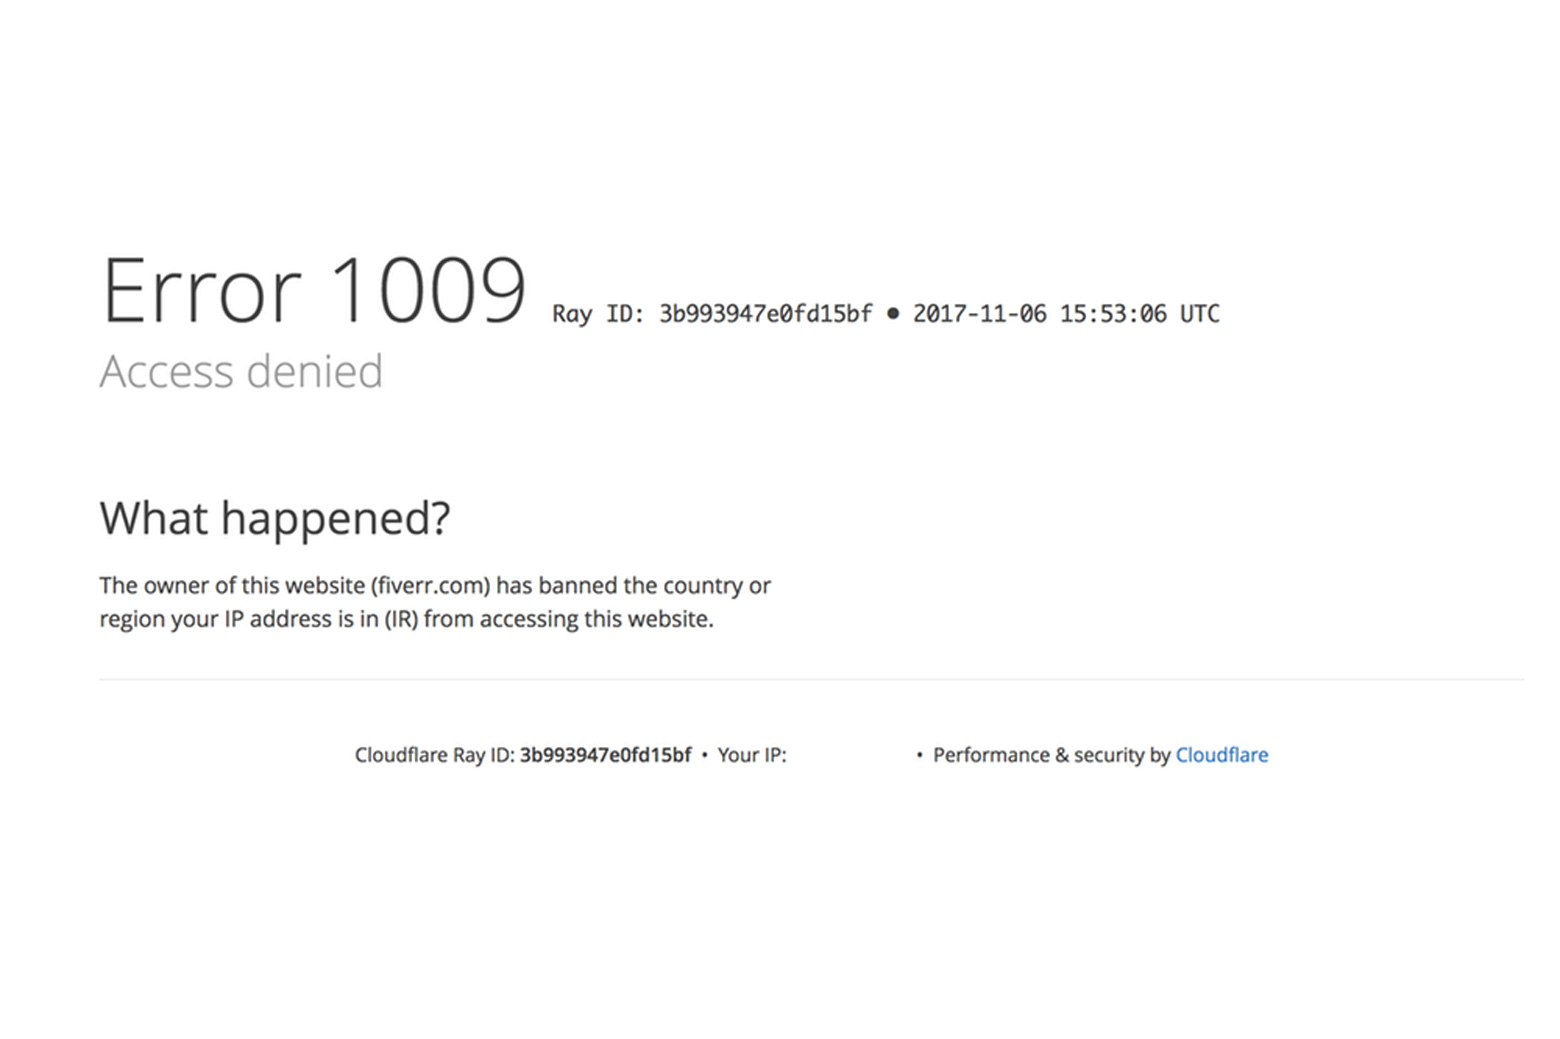 Cloudflare's notification that the owner of a website has banned the country or region a user's IP address is in. Screenshot, CC BY-ND